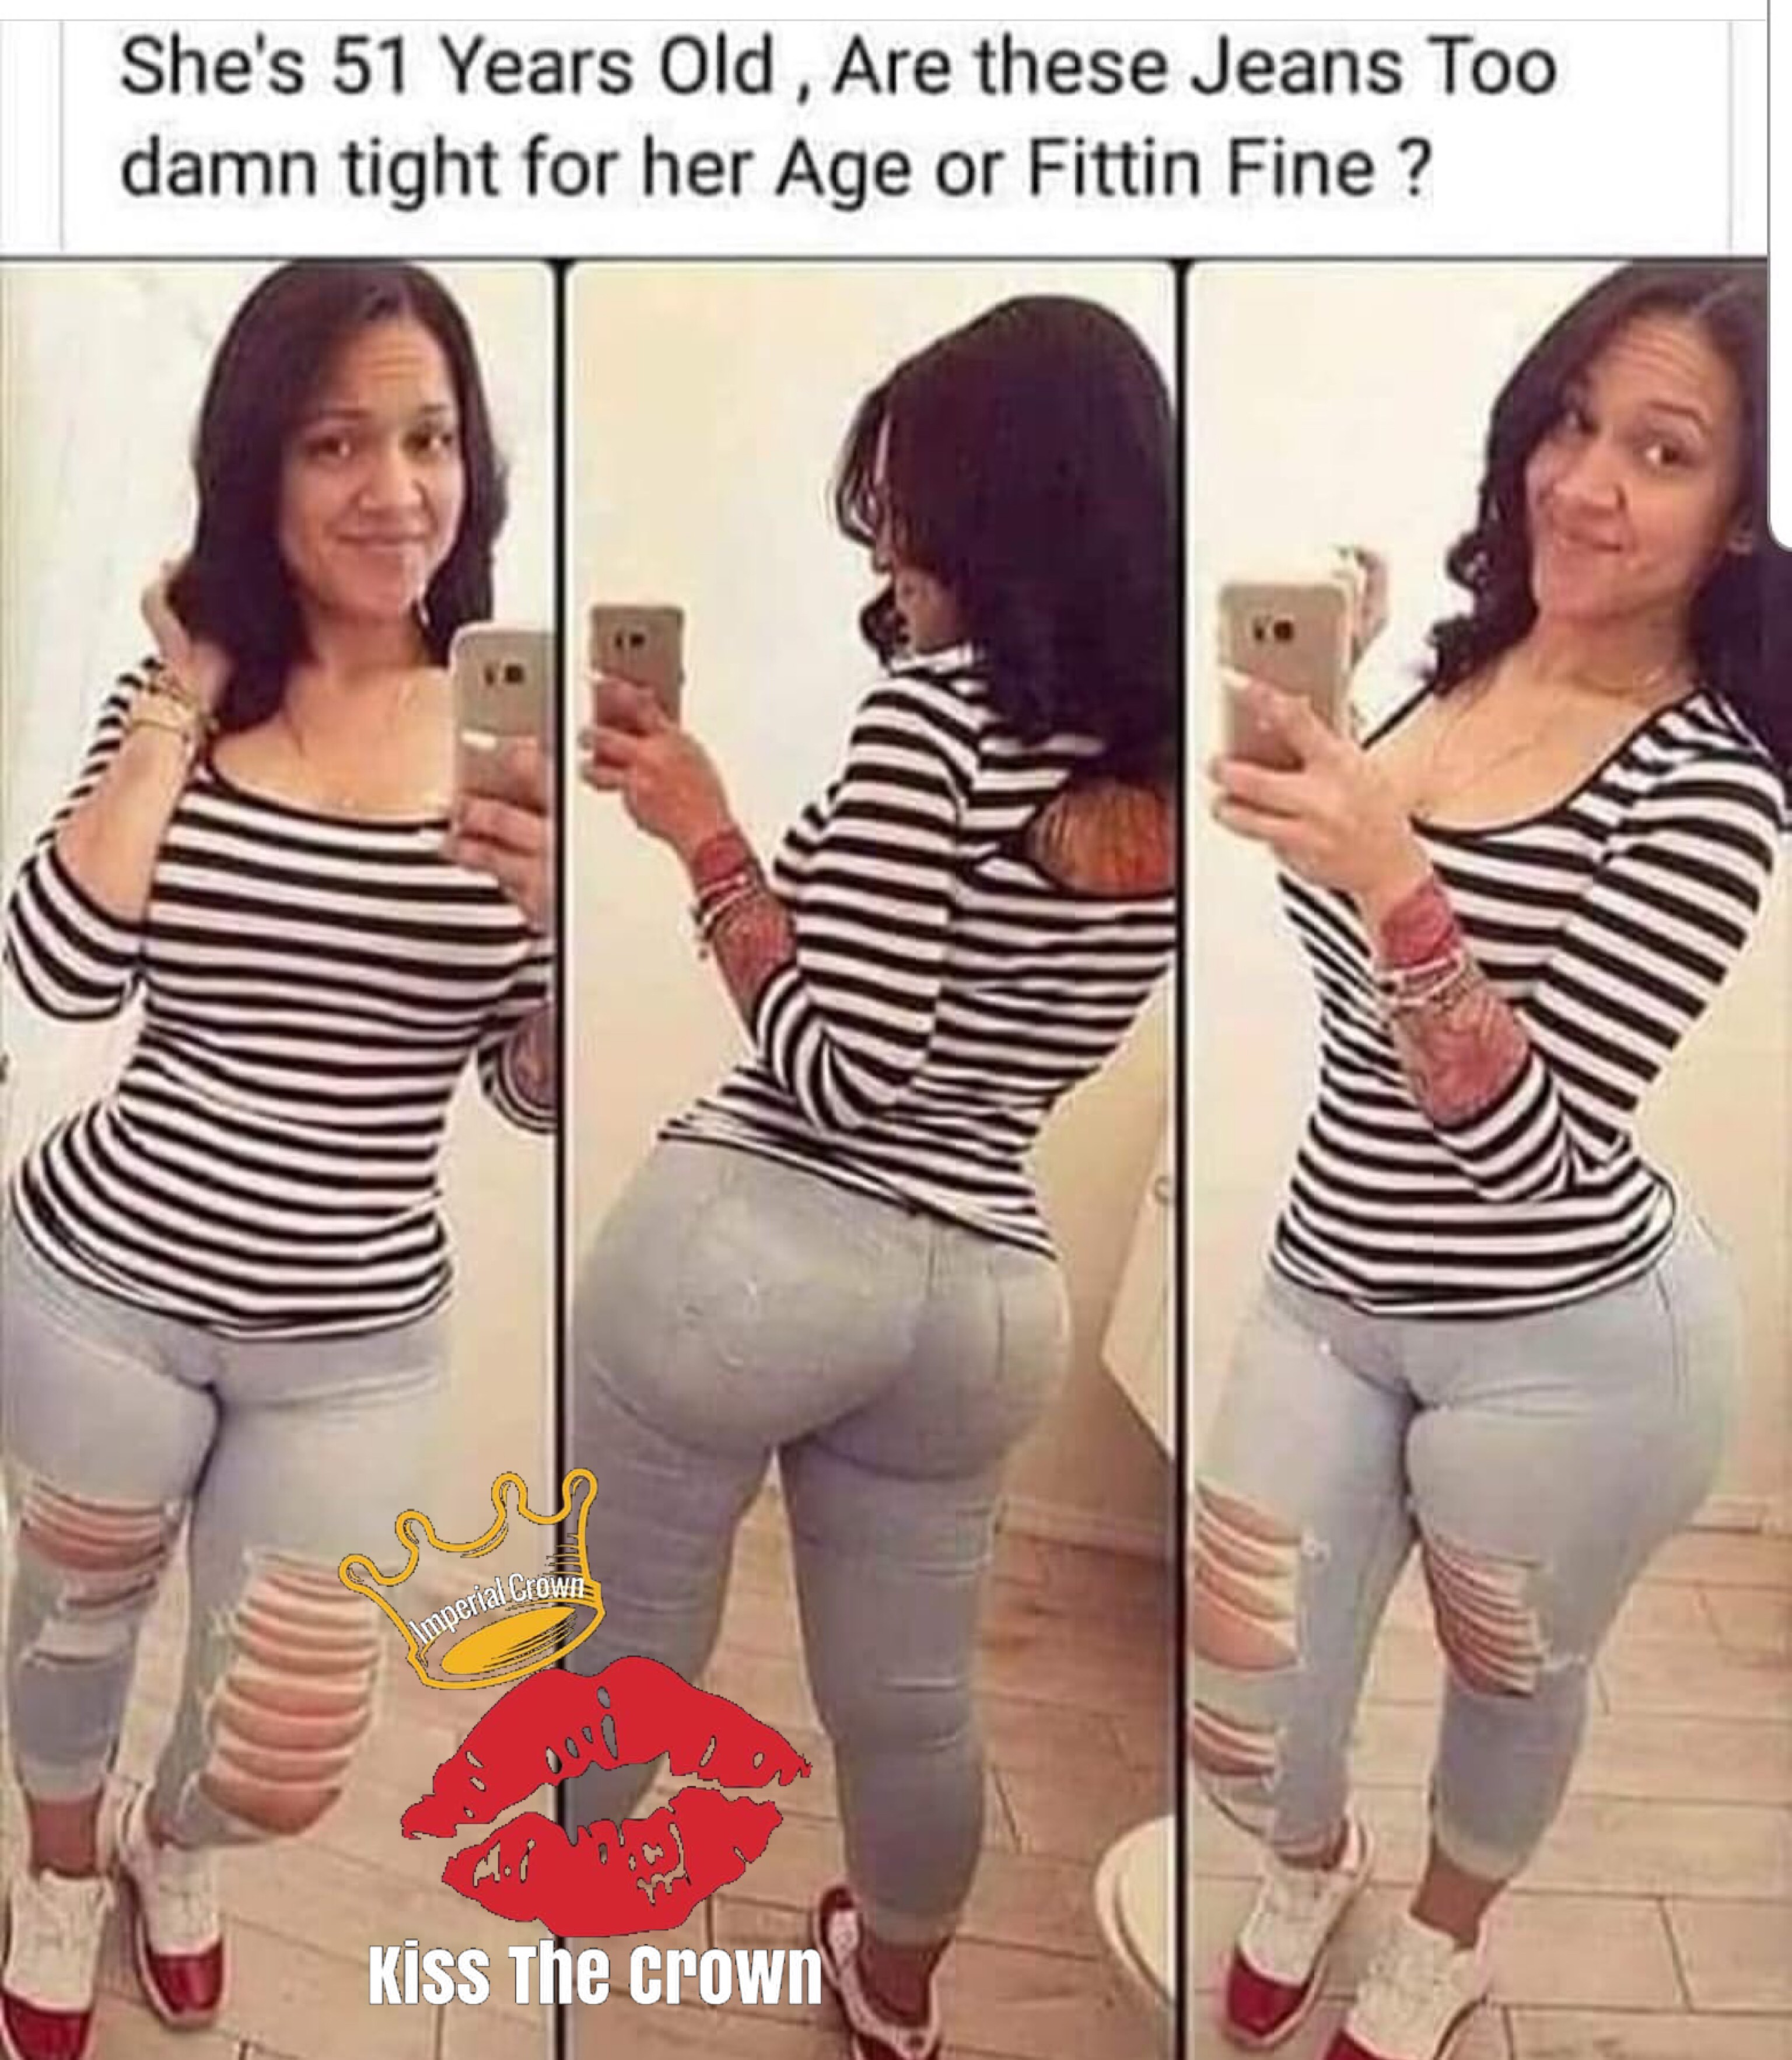 She 51 years old are these jeans too damn tight for her age or fitting fine